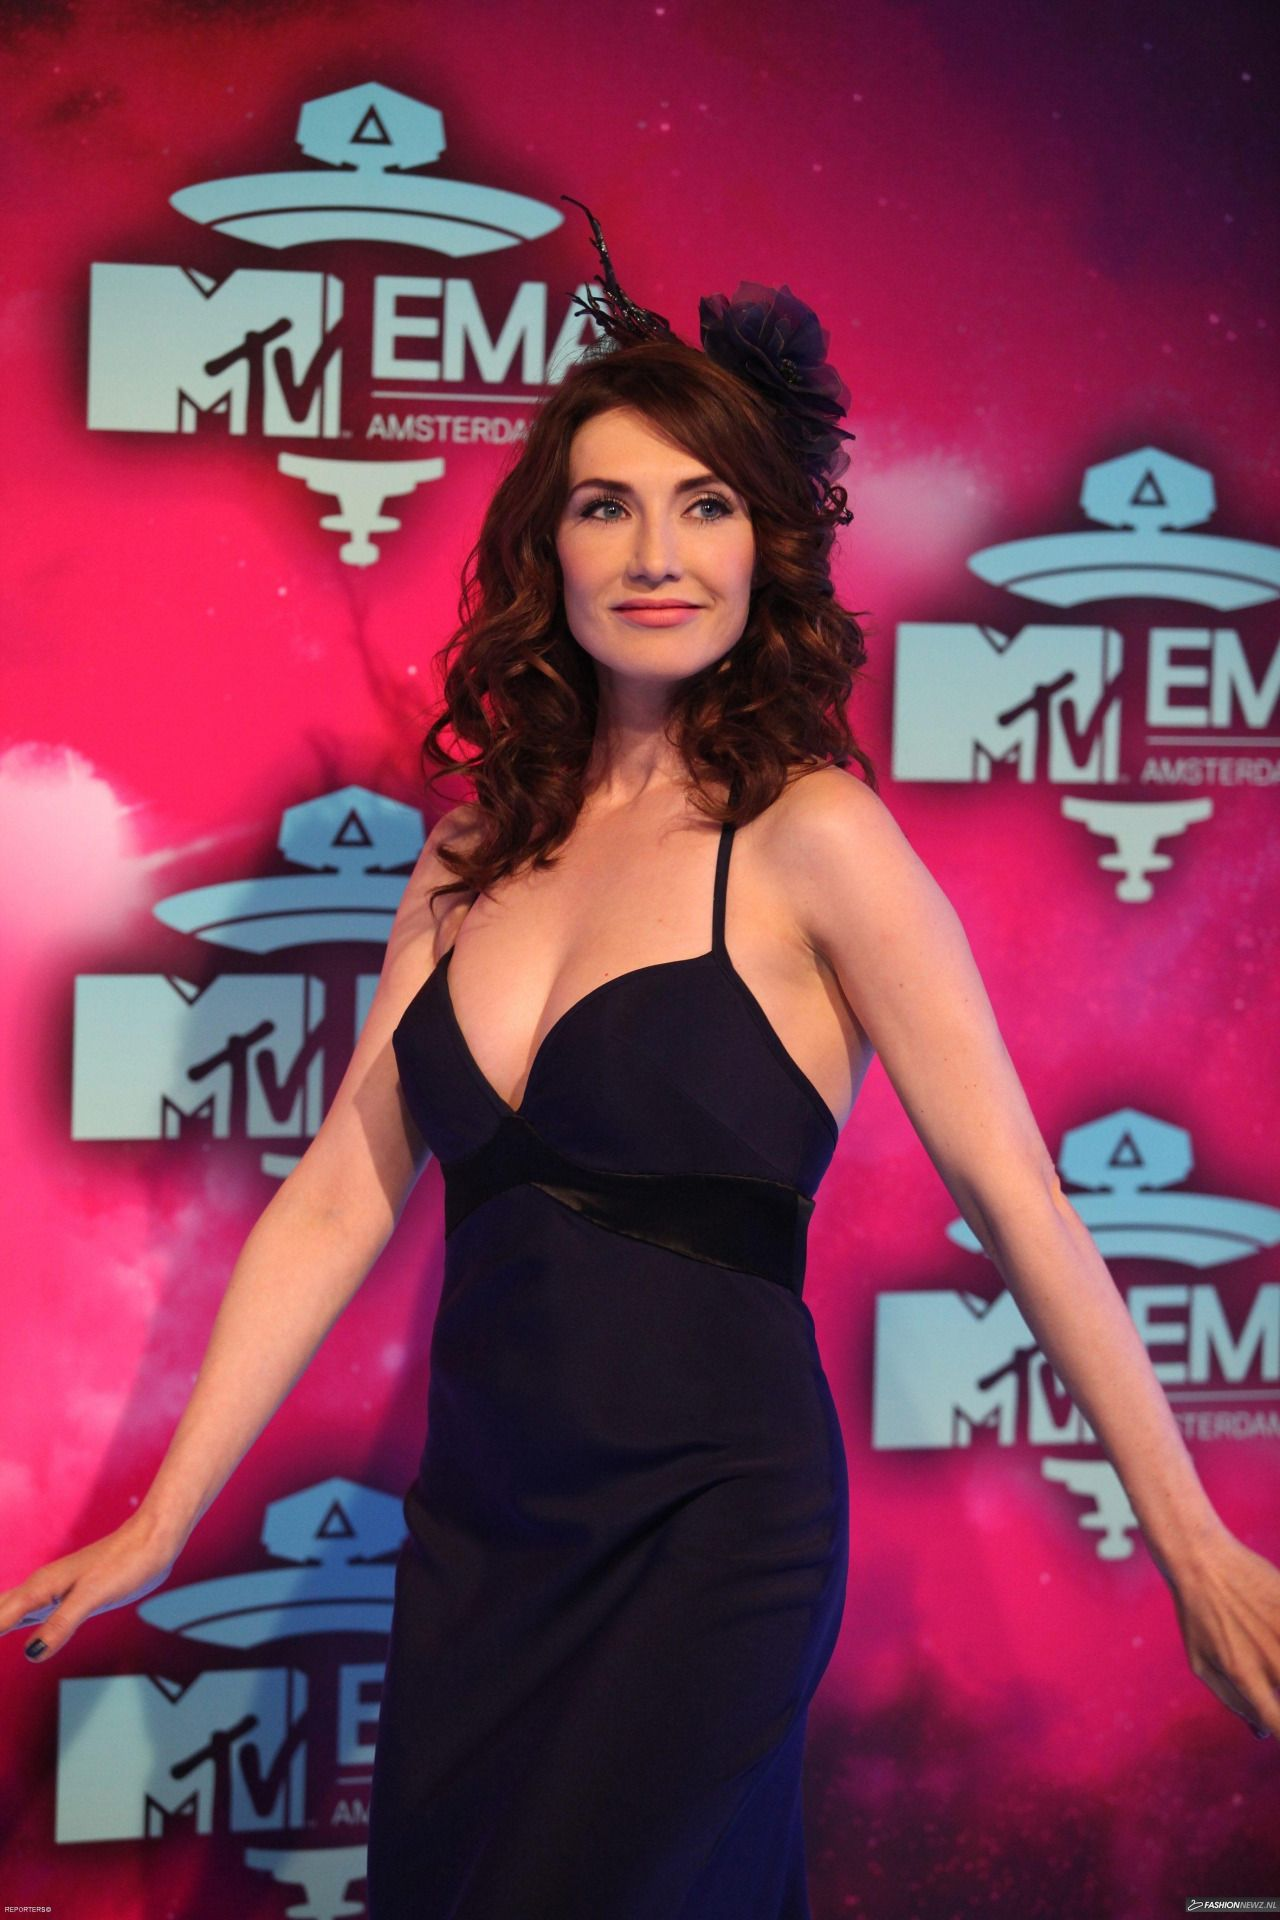 Celebrites Carice Van Houten naked (32 foto and video), Tits, Paparazzi, Boobs, in bikini 2019